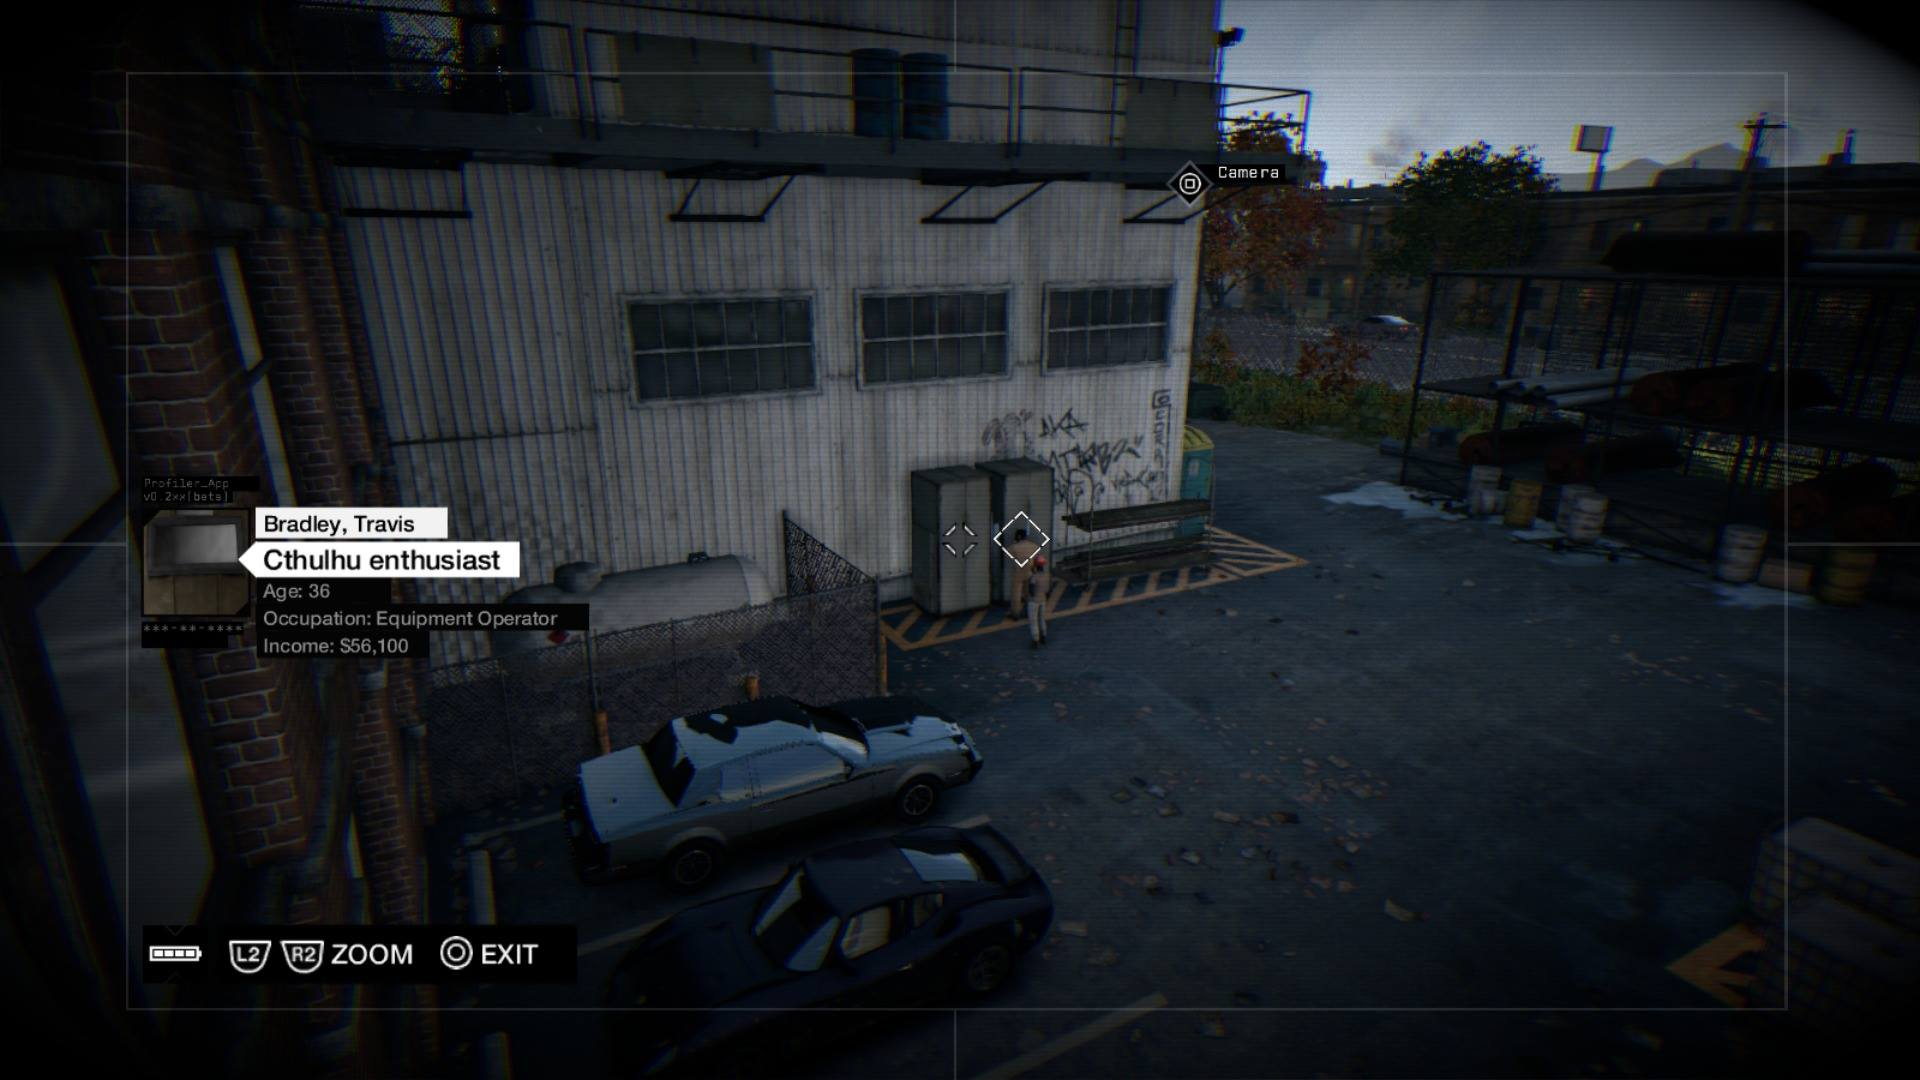 Watch_Dogs Cthulhu